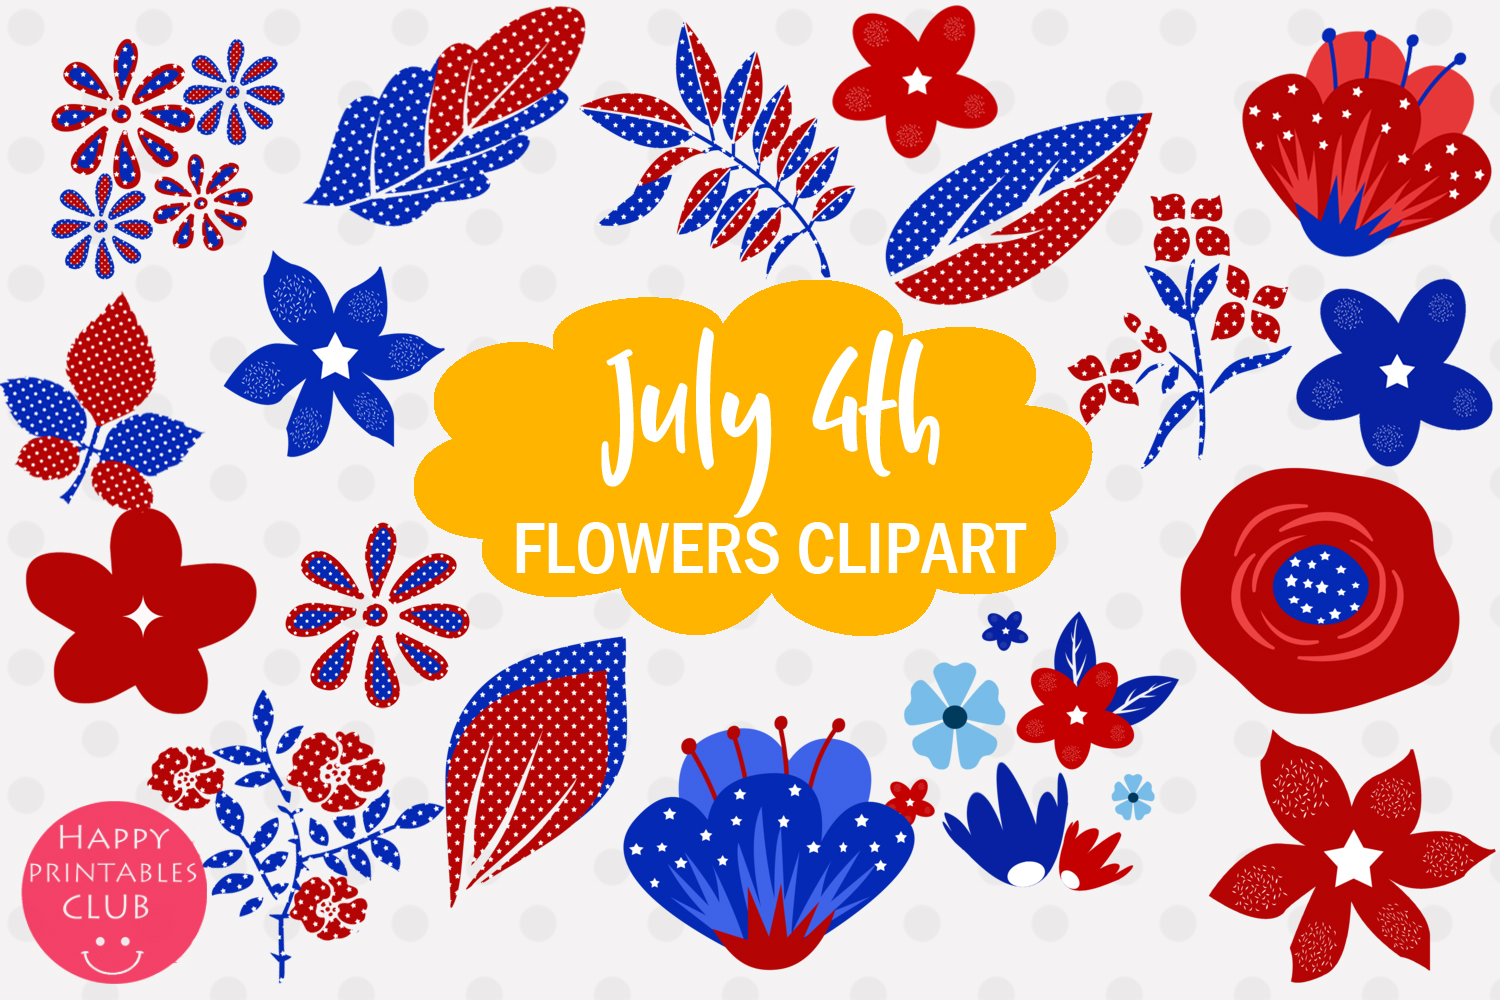 4th July Flowers Clipart- July 4 Flowers Graphics Clipart example image 1